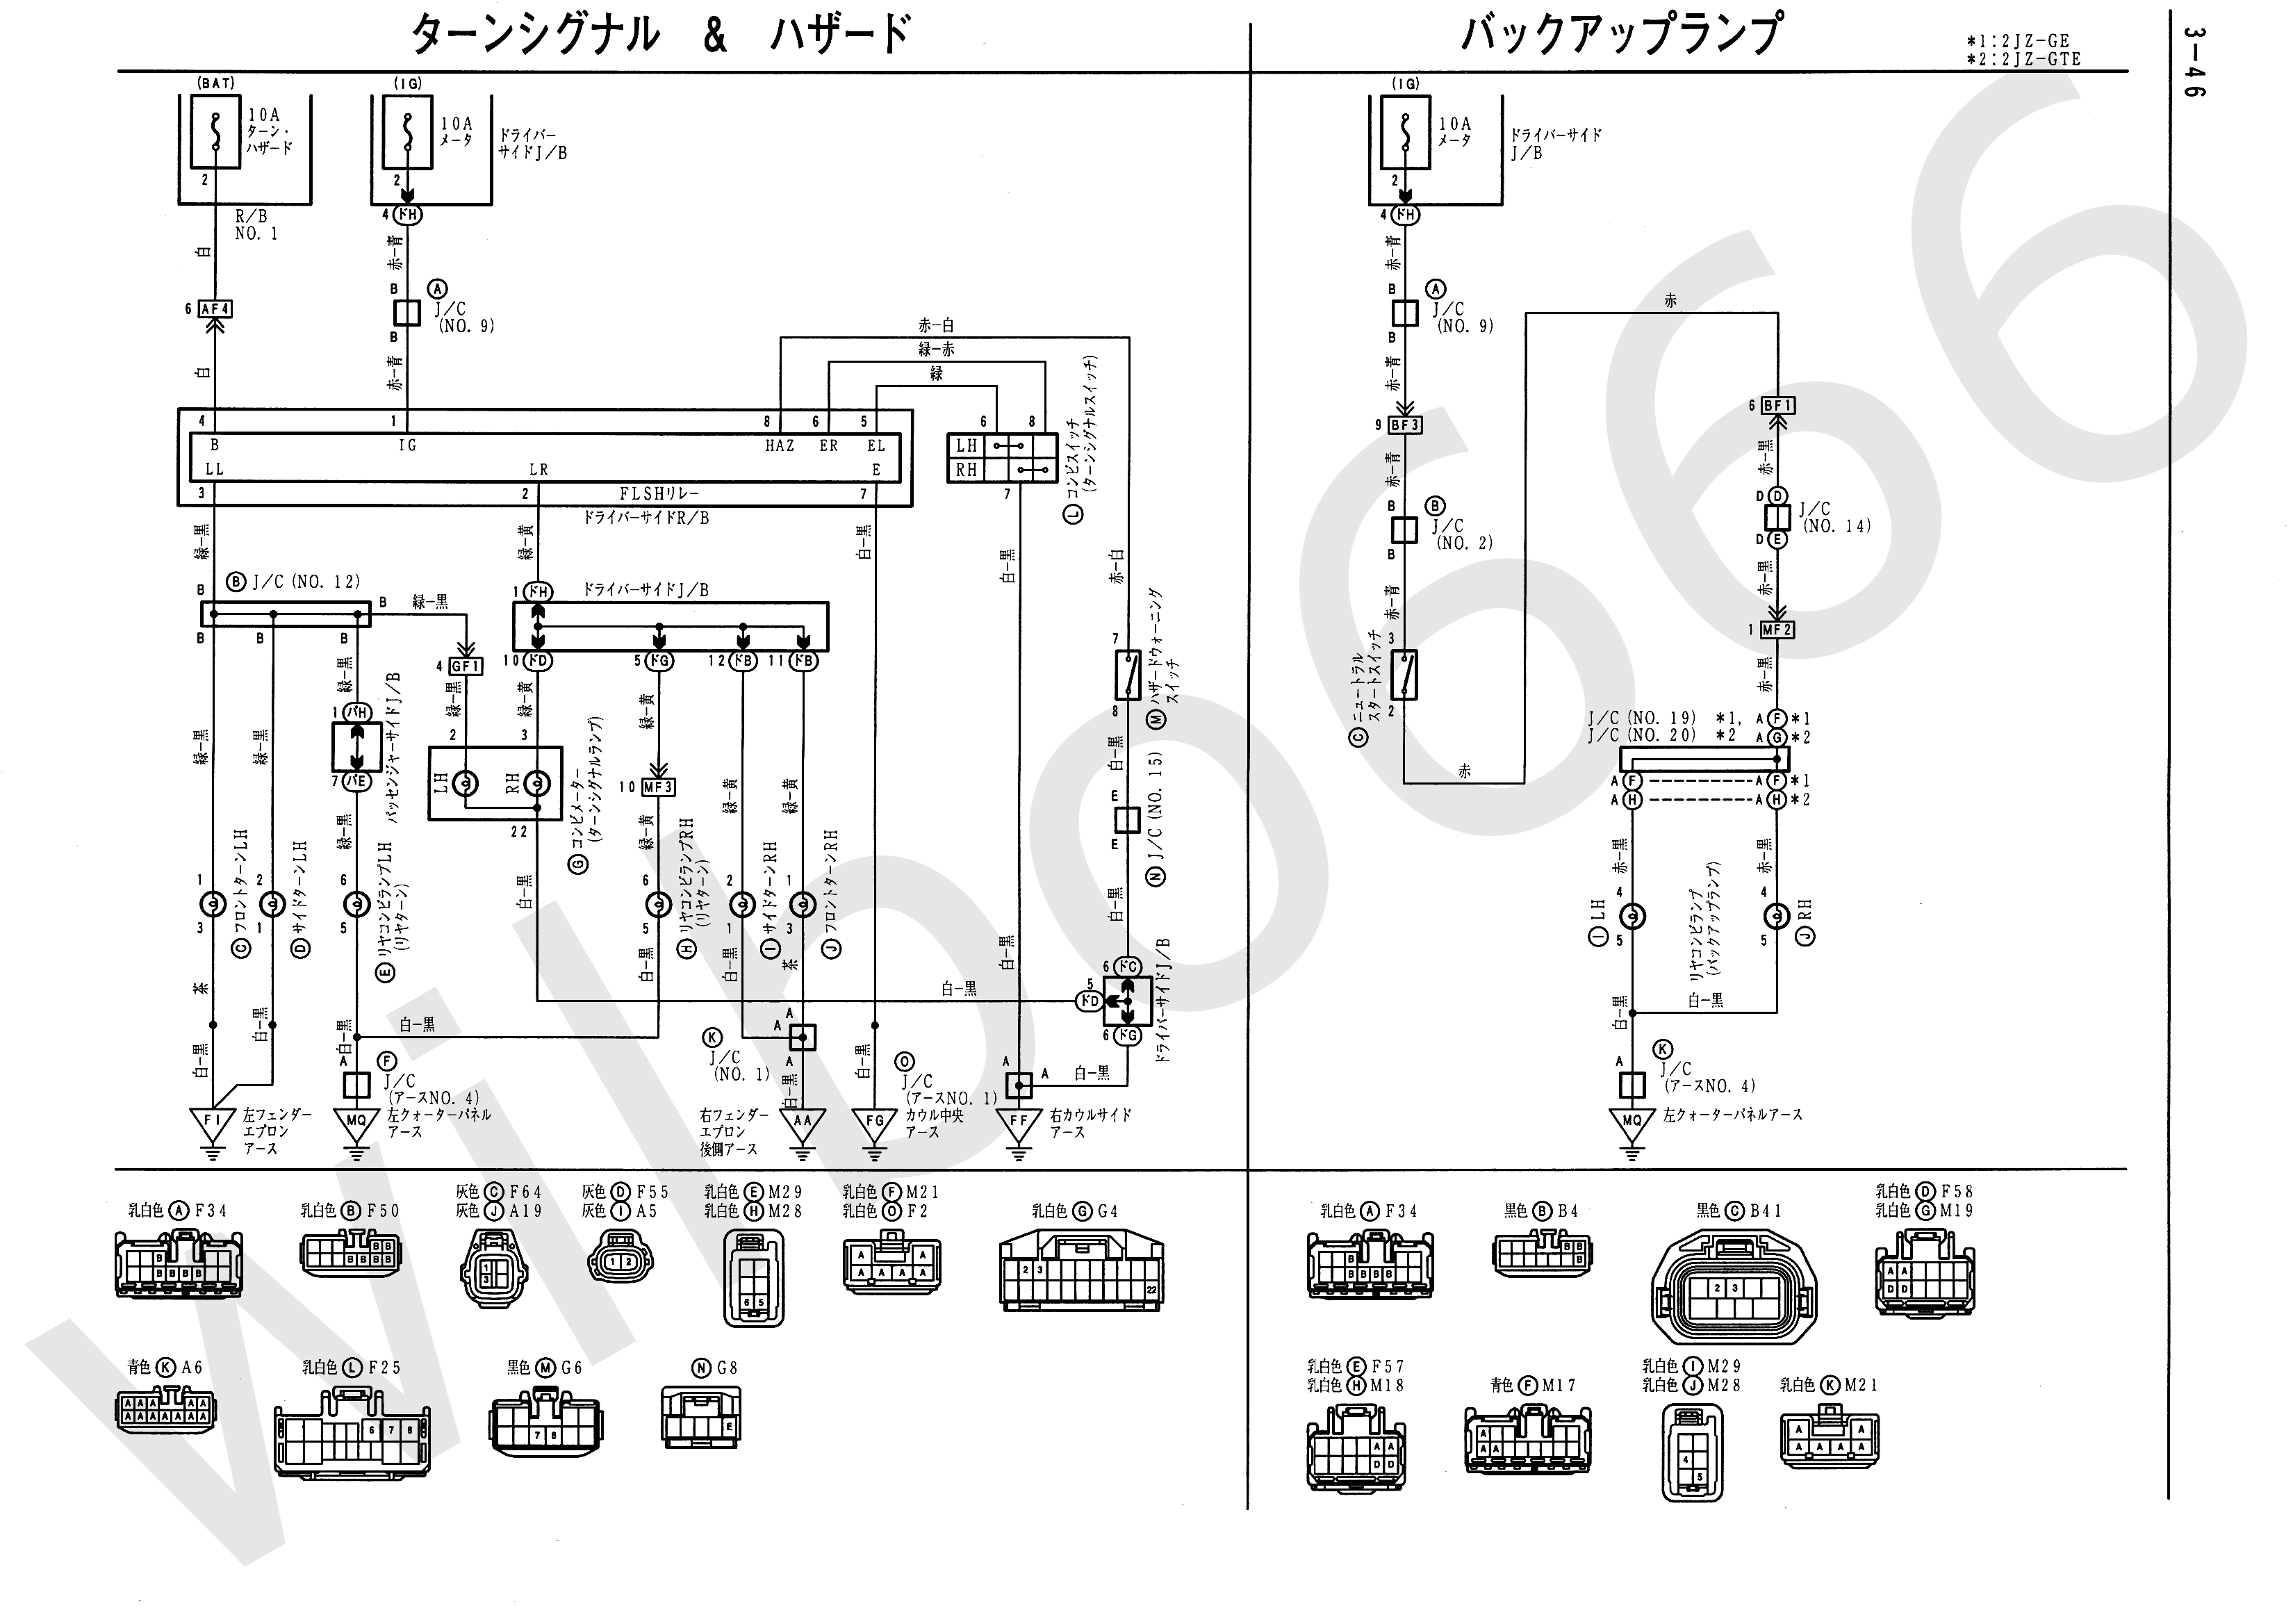 hotsy hot water 0071e pressure diagram of a range outlet wiring Western Star Wiring Schematic  Hotsy Burner Schematic Wiring Hotsy Pressure Washer Wiring Diagram Hotsy Pressure Wiring Schematic